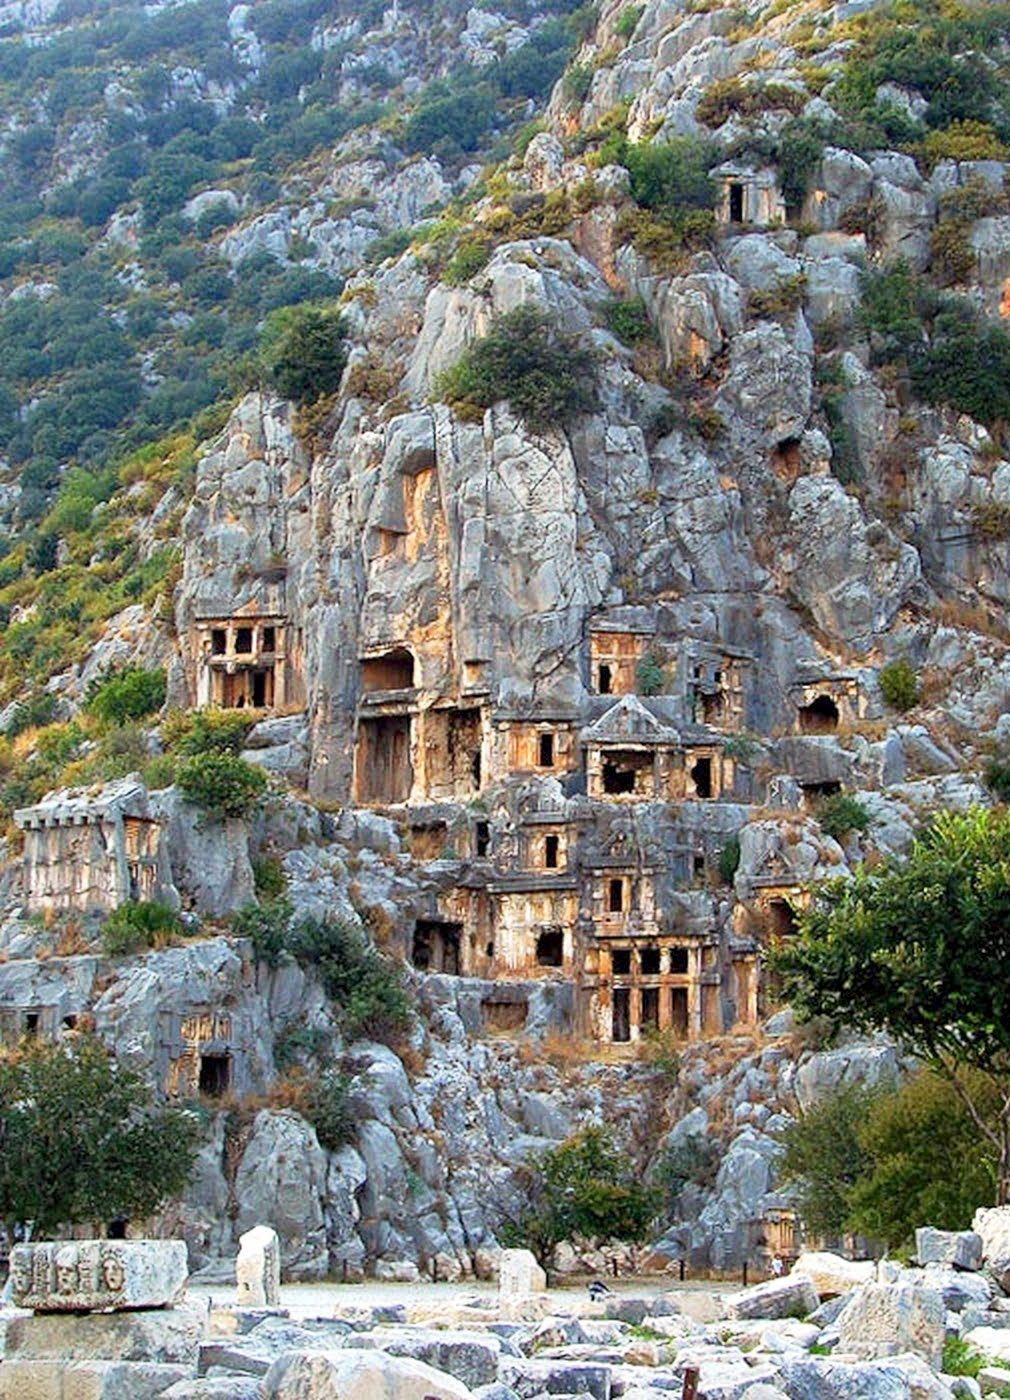 The Nicest Pictures: Myra, an ancient town in Lycia, Turkey